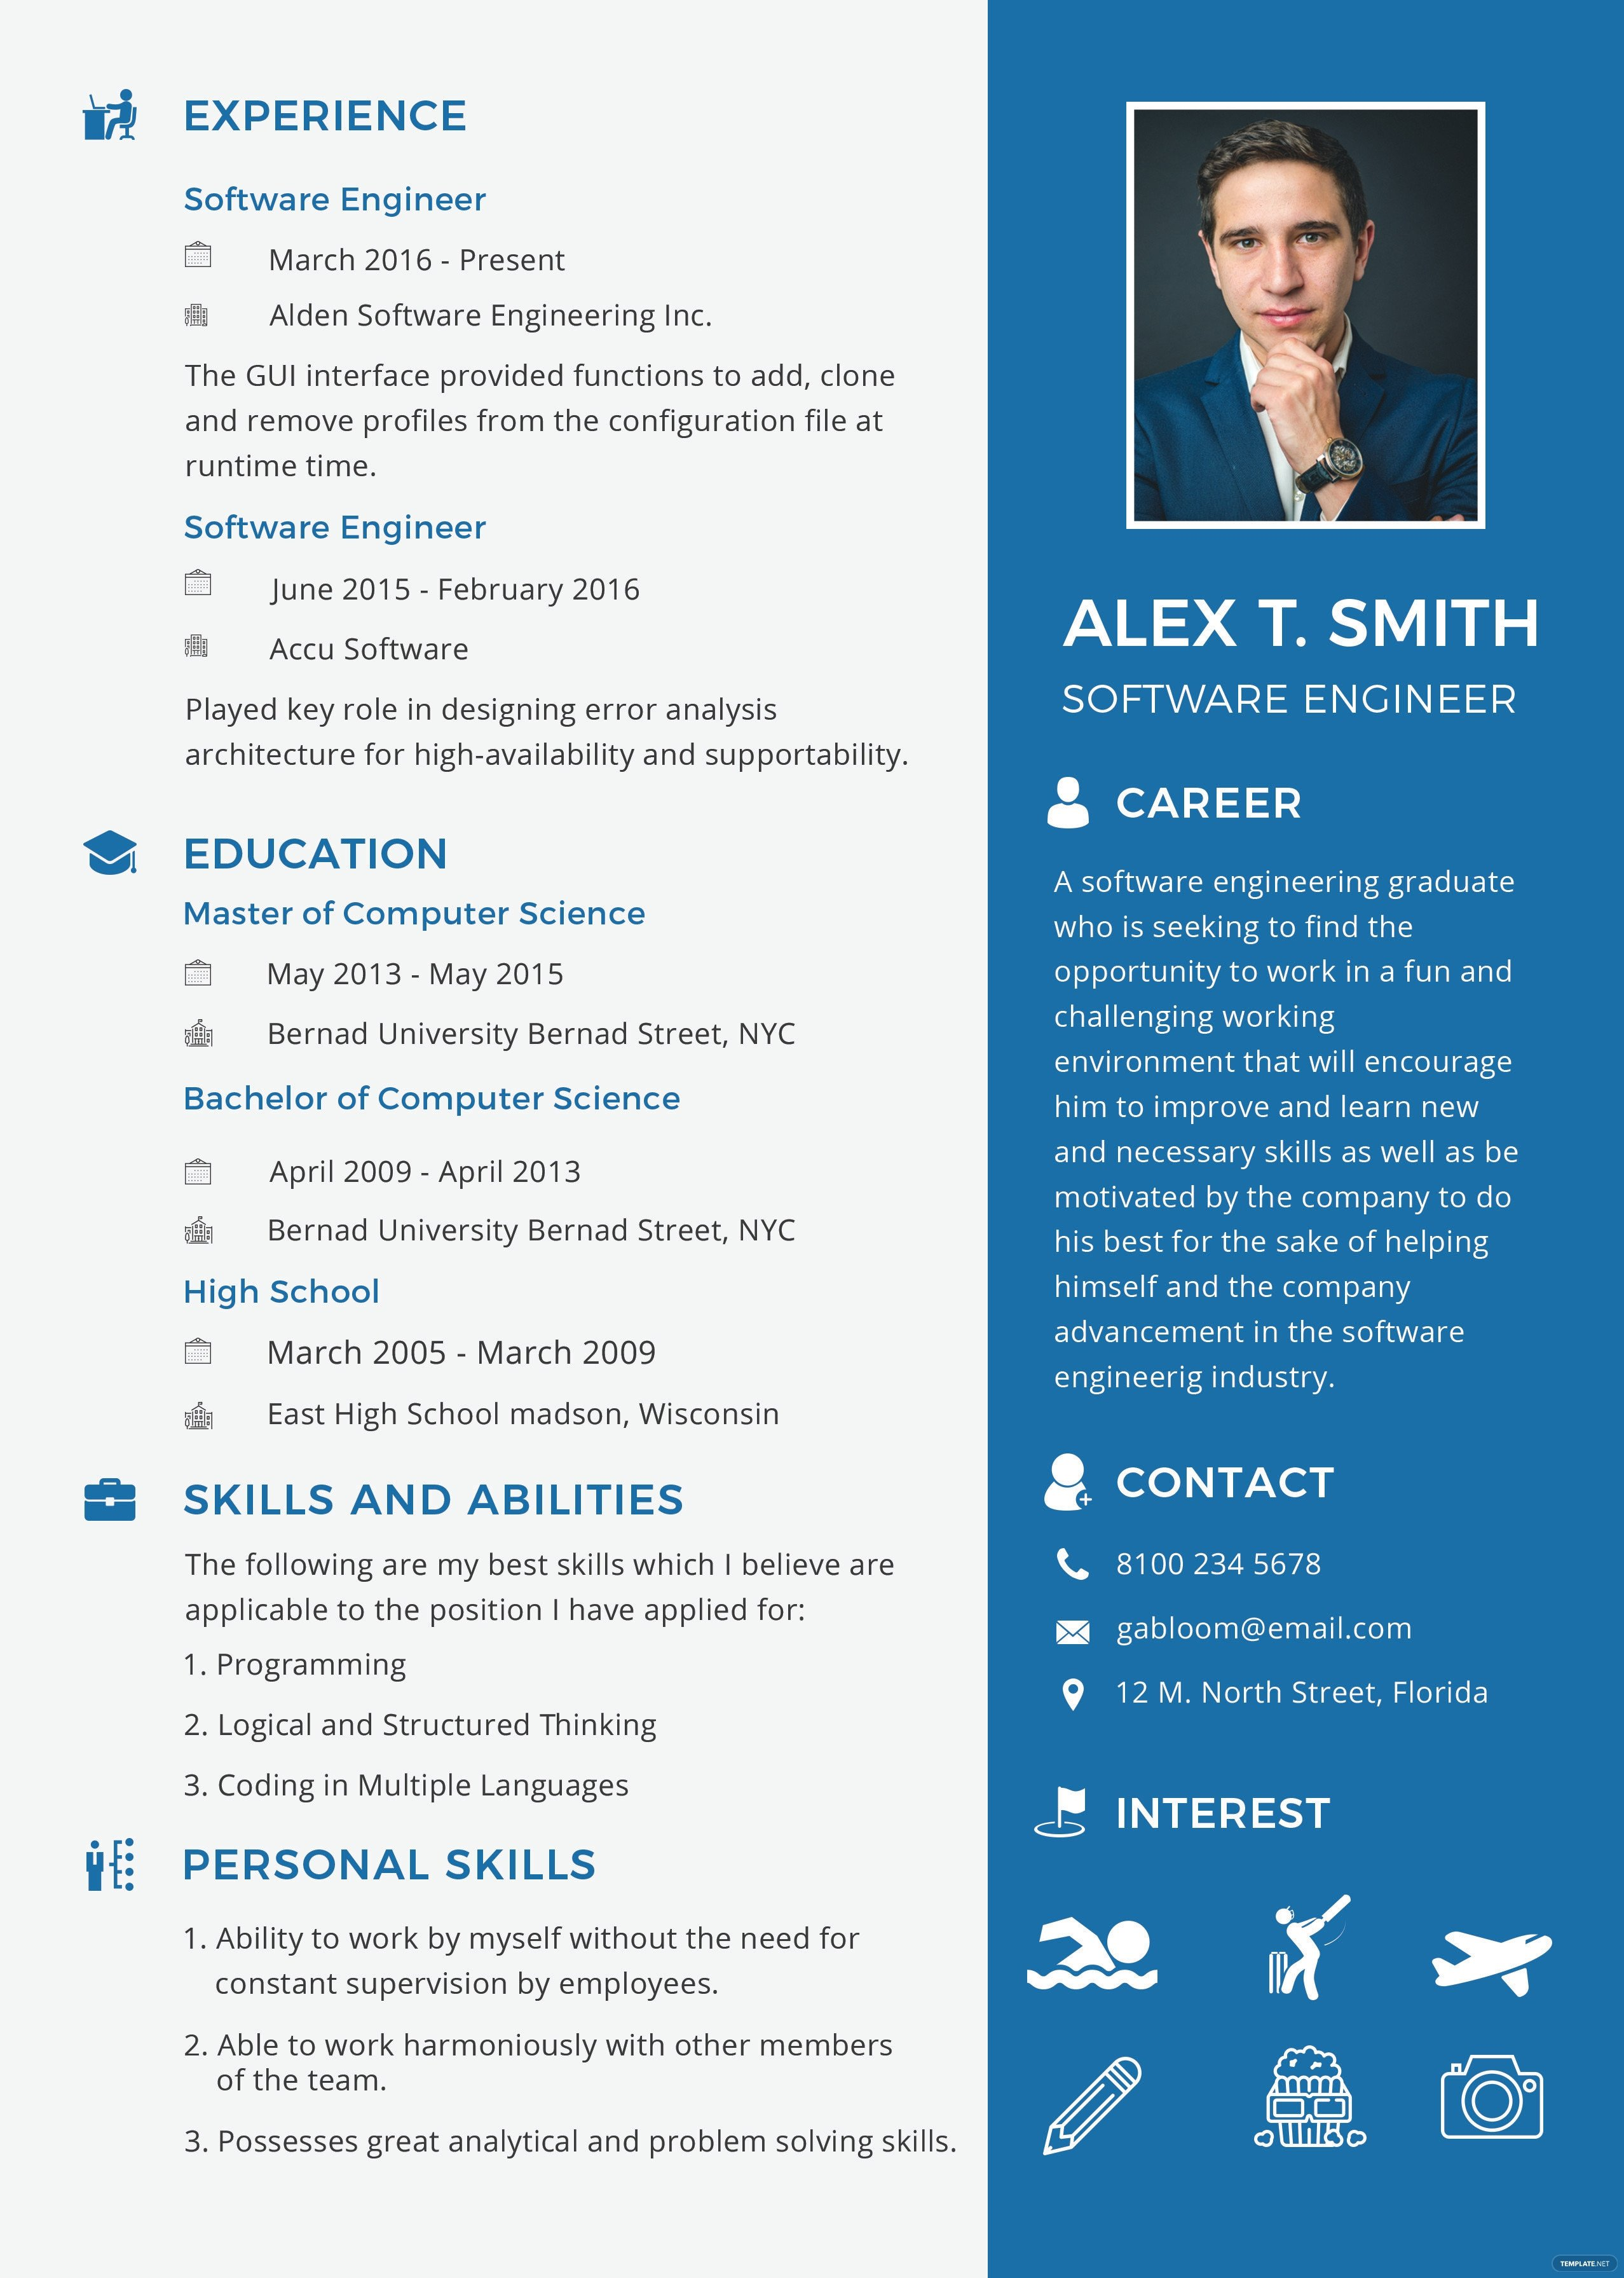 Software Engineering Resume Template Free Resume and Cv for software Engineer Fresher Template